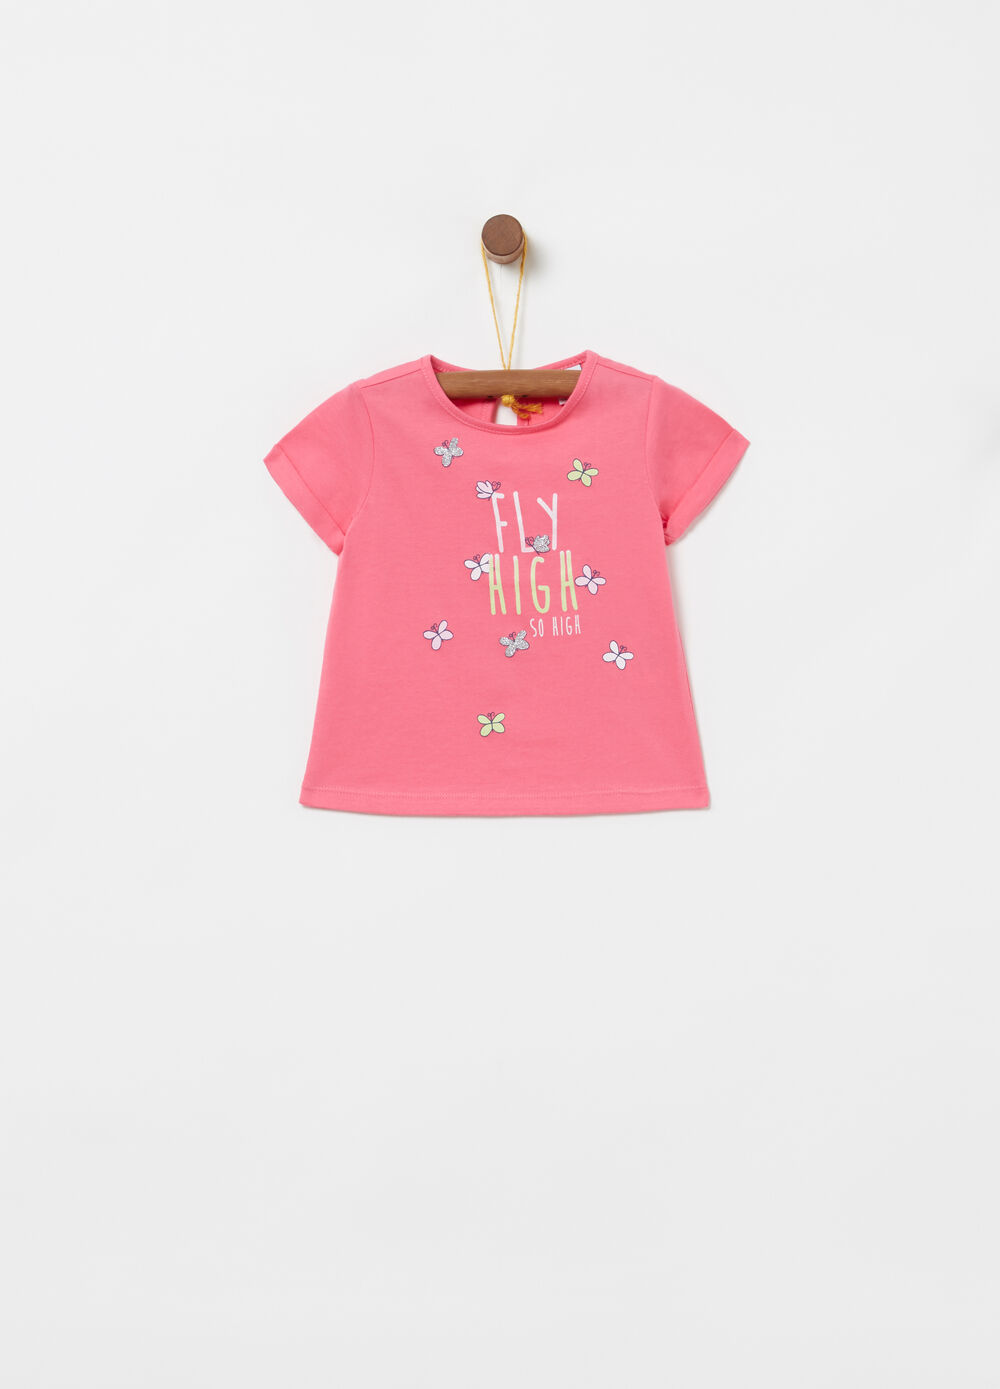 100% cotton jersey T-shirt with glitter print